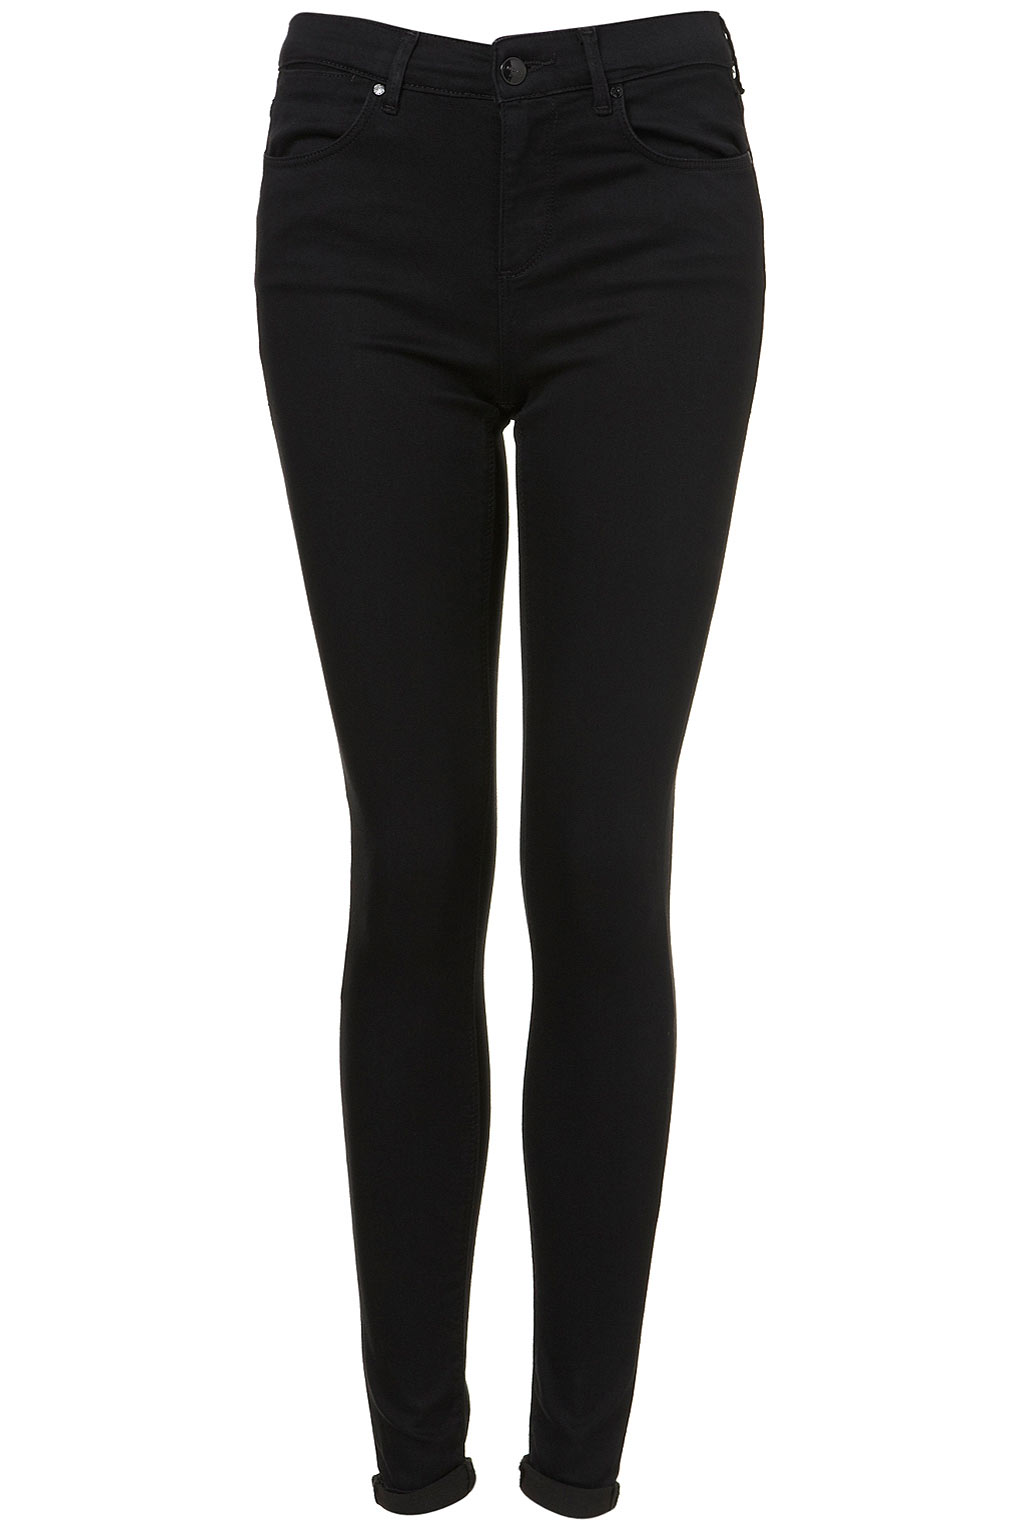 Topshop Moto Black Supersoft Skinny Leigh Jeans in Black | Lyst